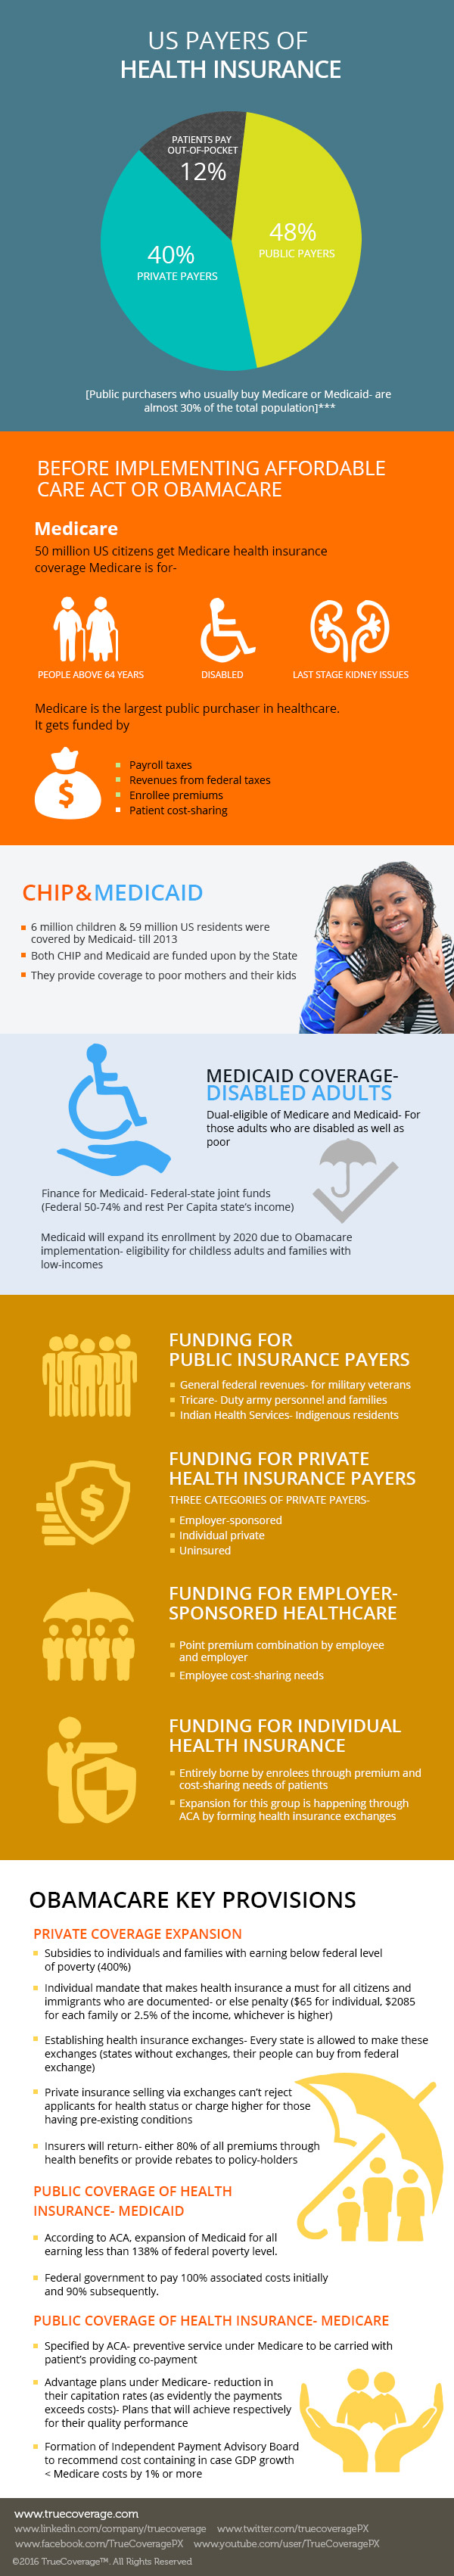 Health insurance payers data of USA. Get the number of